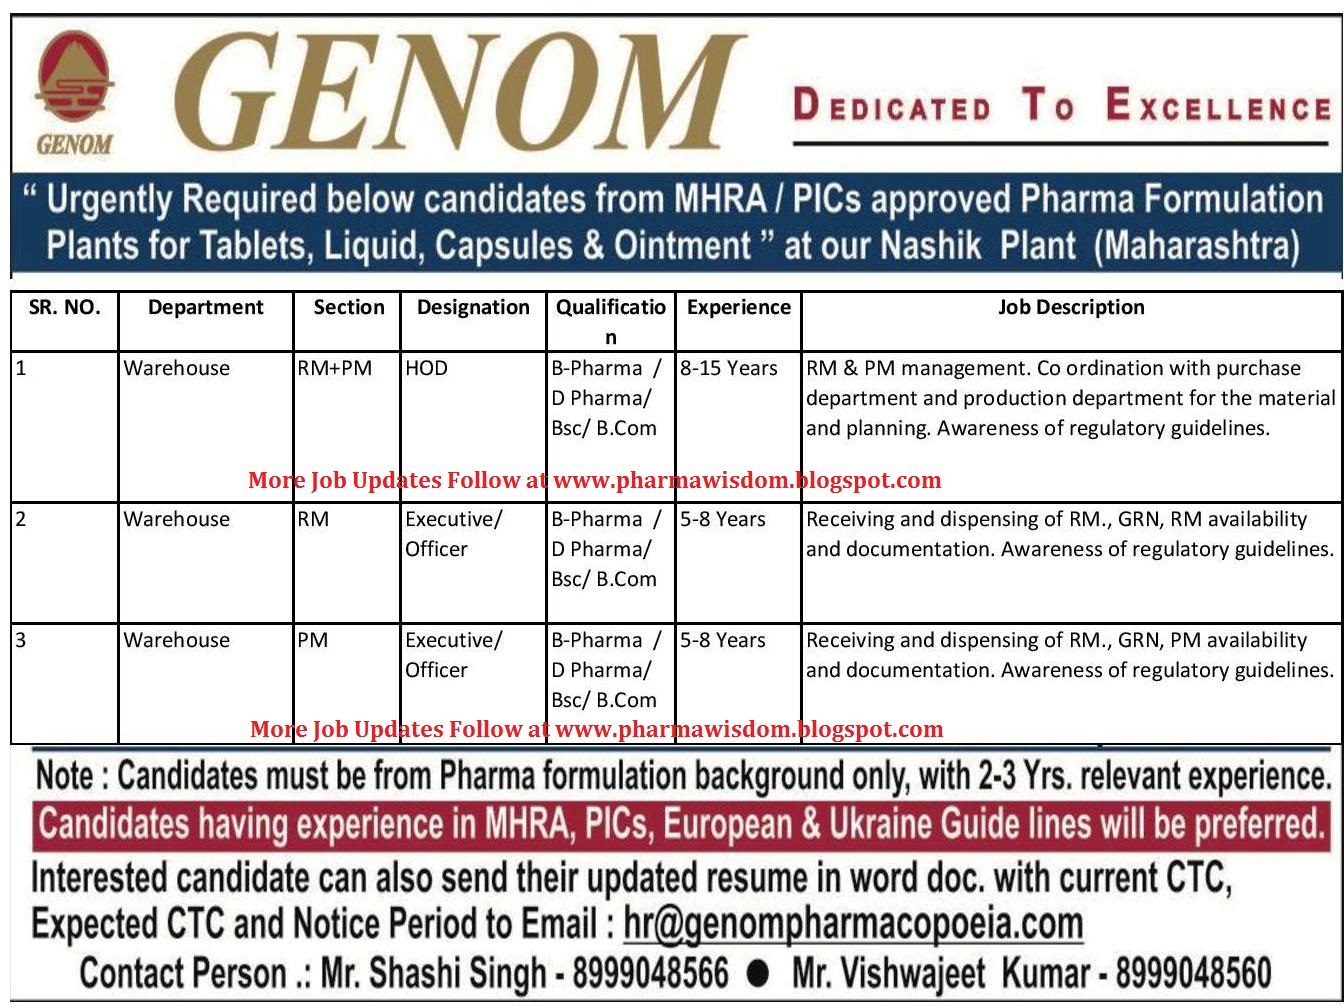 Pharma Wisdom Multiple Job Openings In Quality Assurance